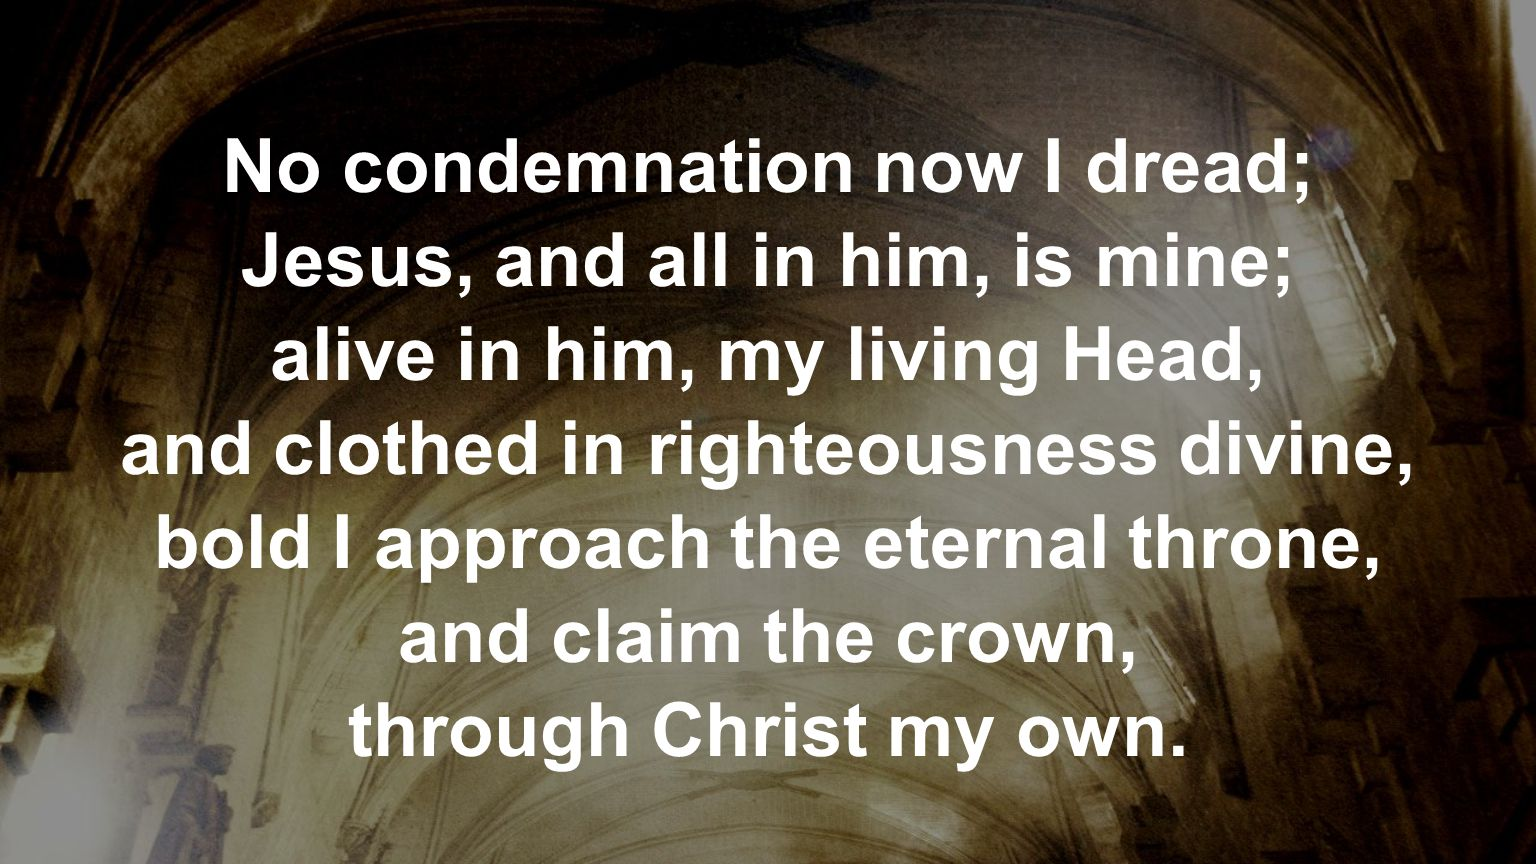 No condemnation now I dread; Jesus, and all in him, is mine;